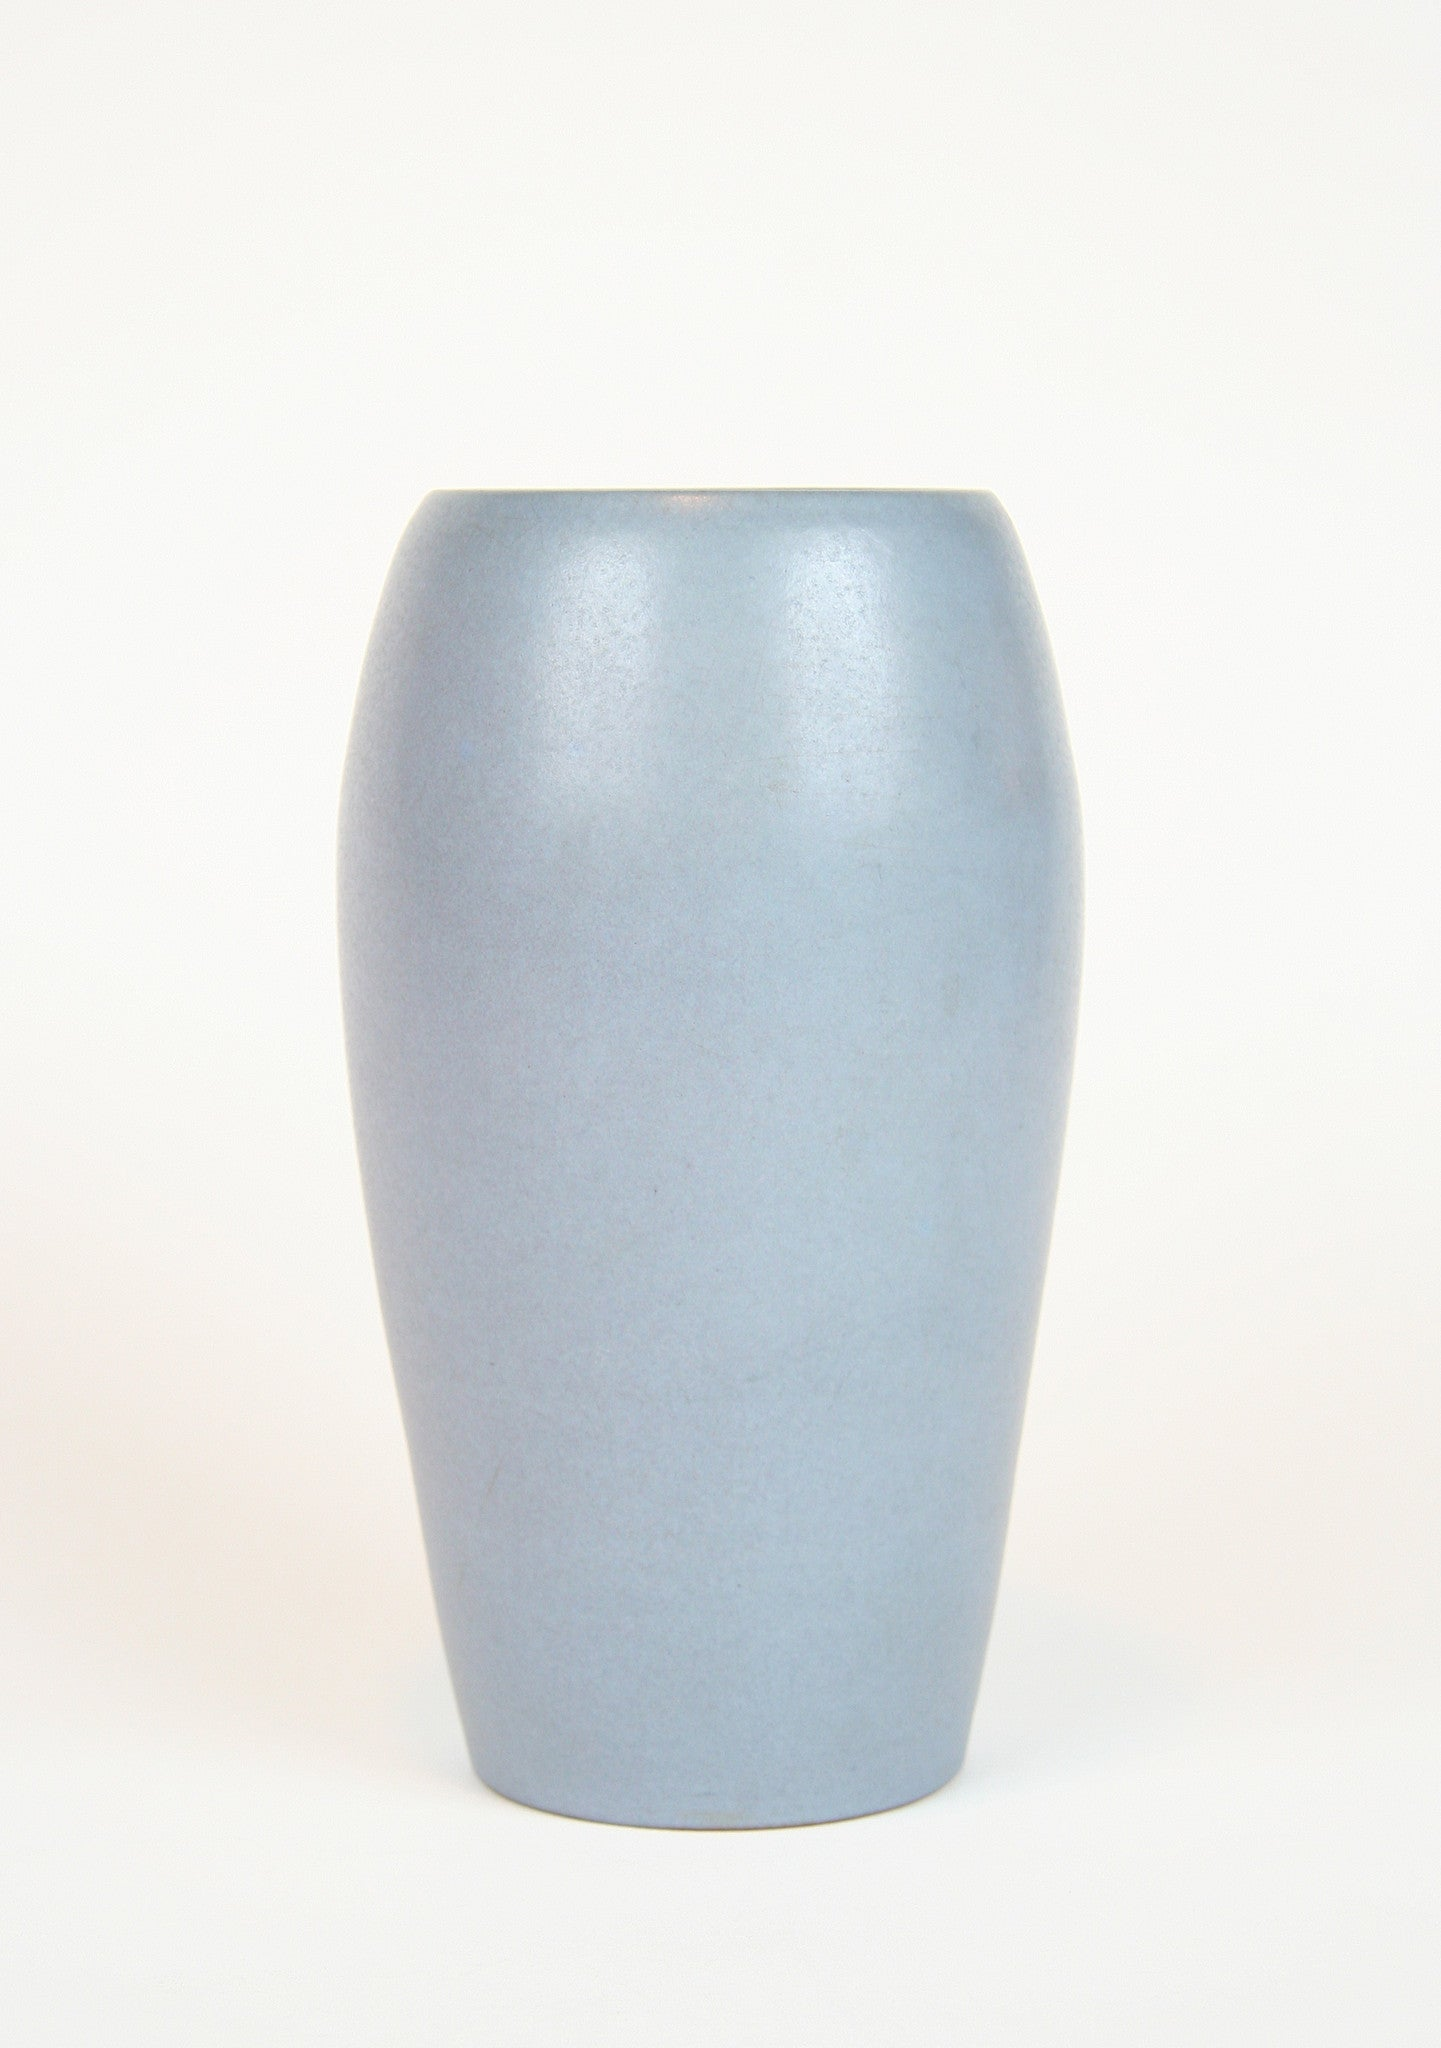 A Large Marblehead Pottery Grey/Lavender Glazed Vase